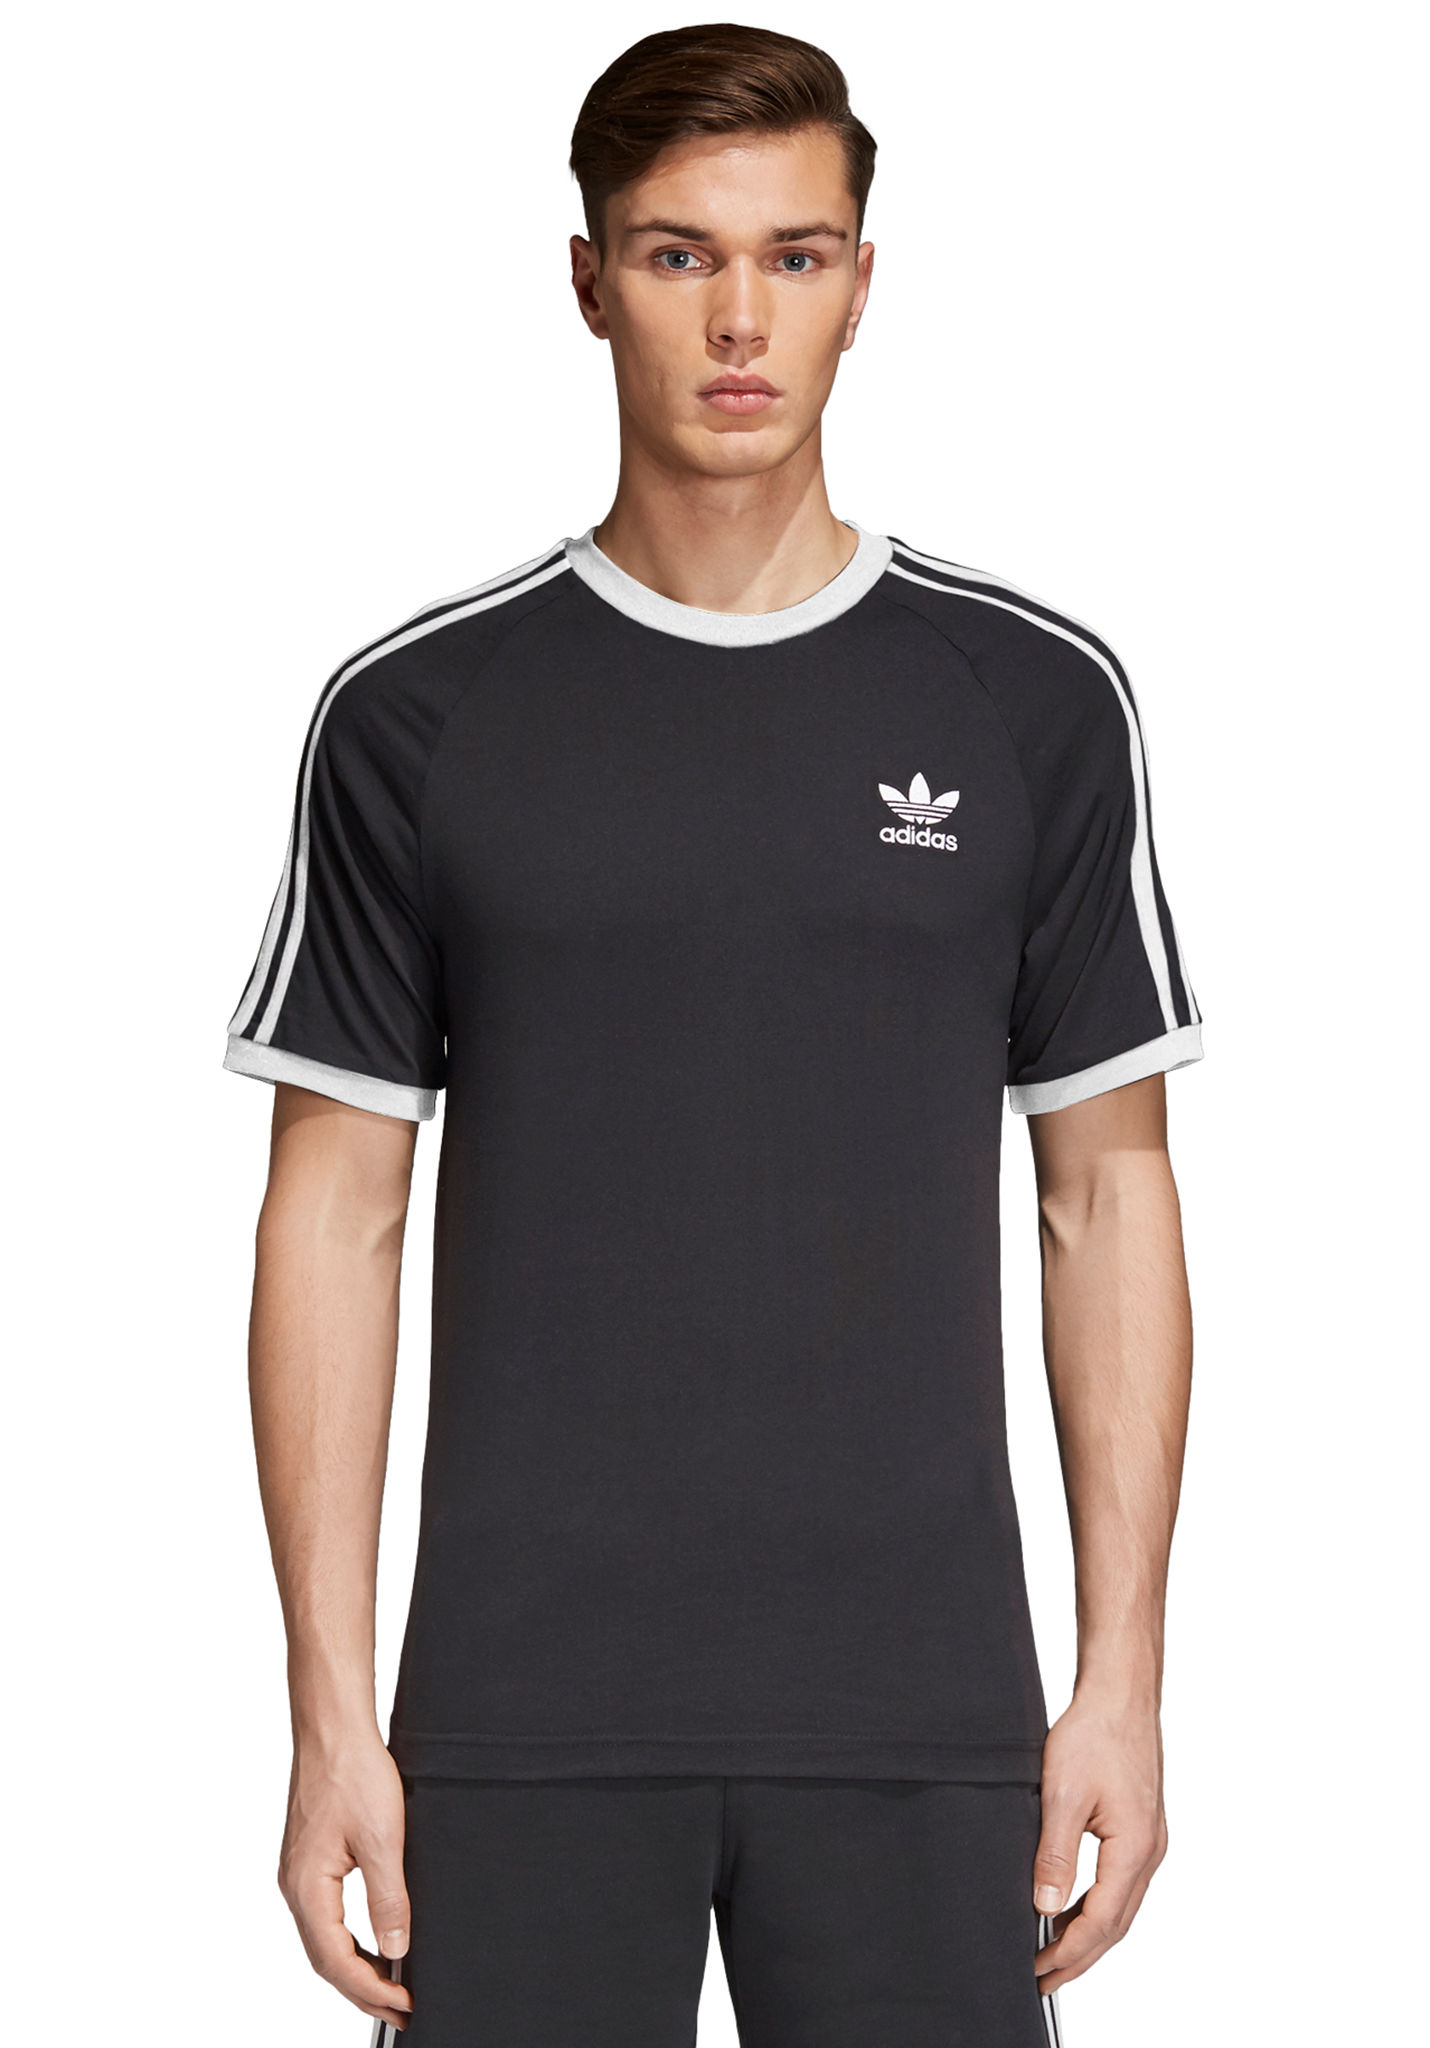 ADIDAS ORIGINALS 3 Stripes T shirt voor Heren Zwart